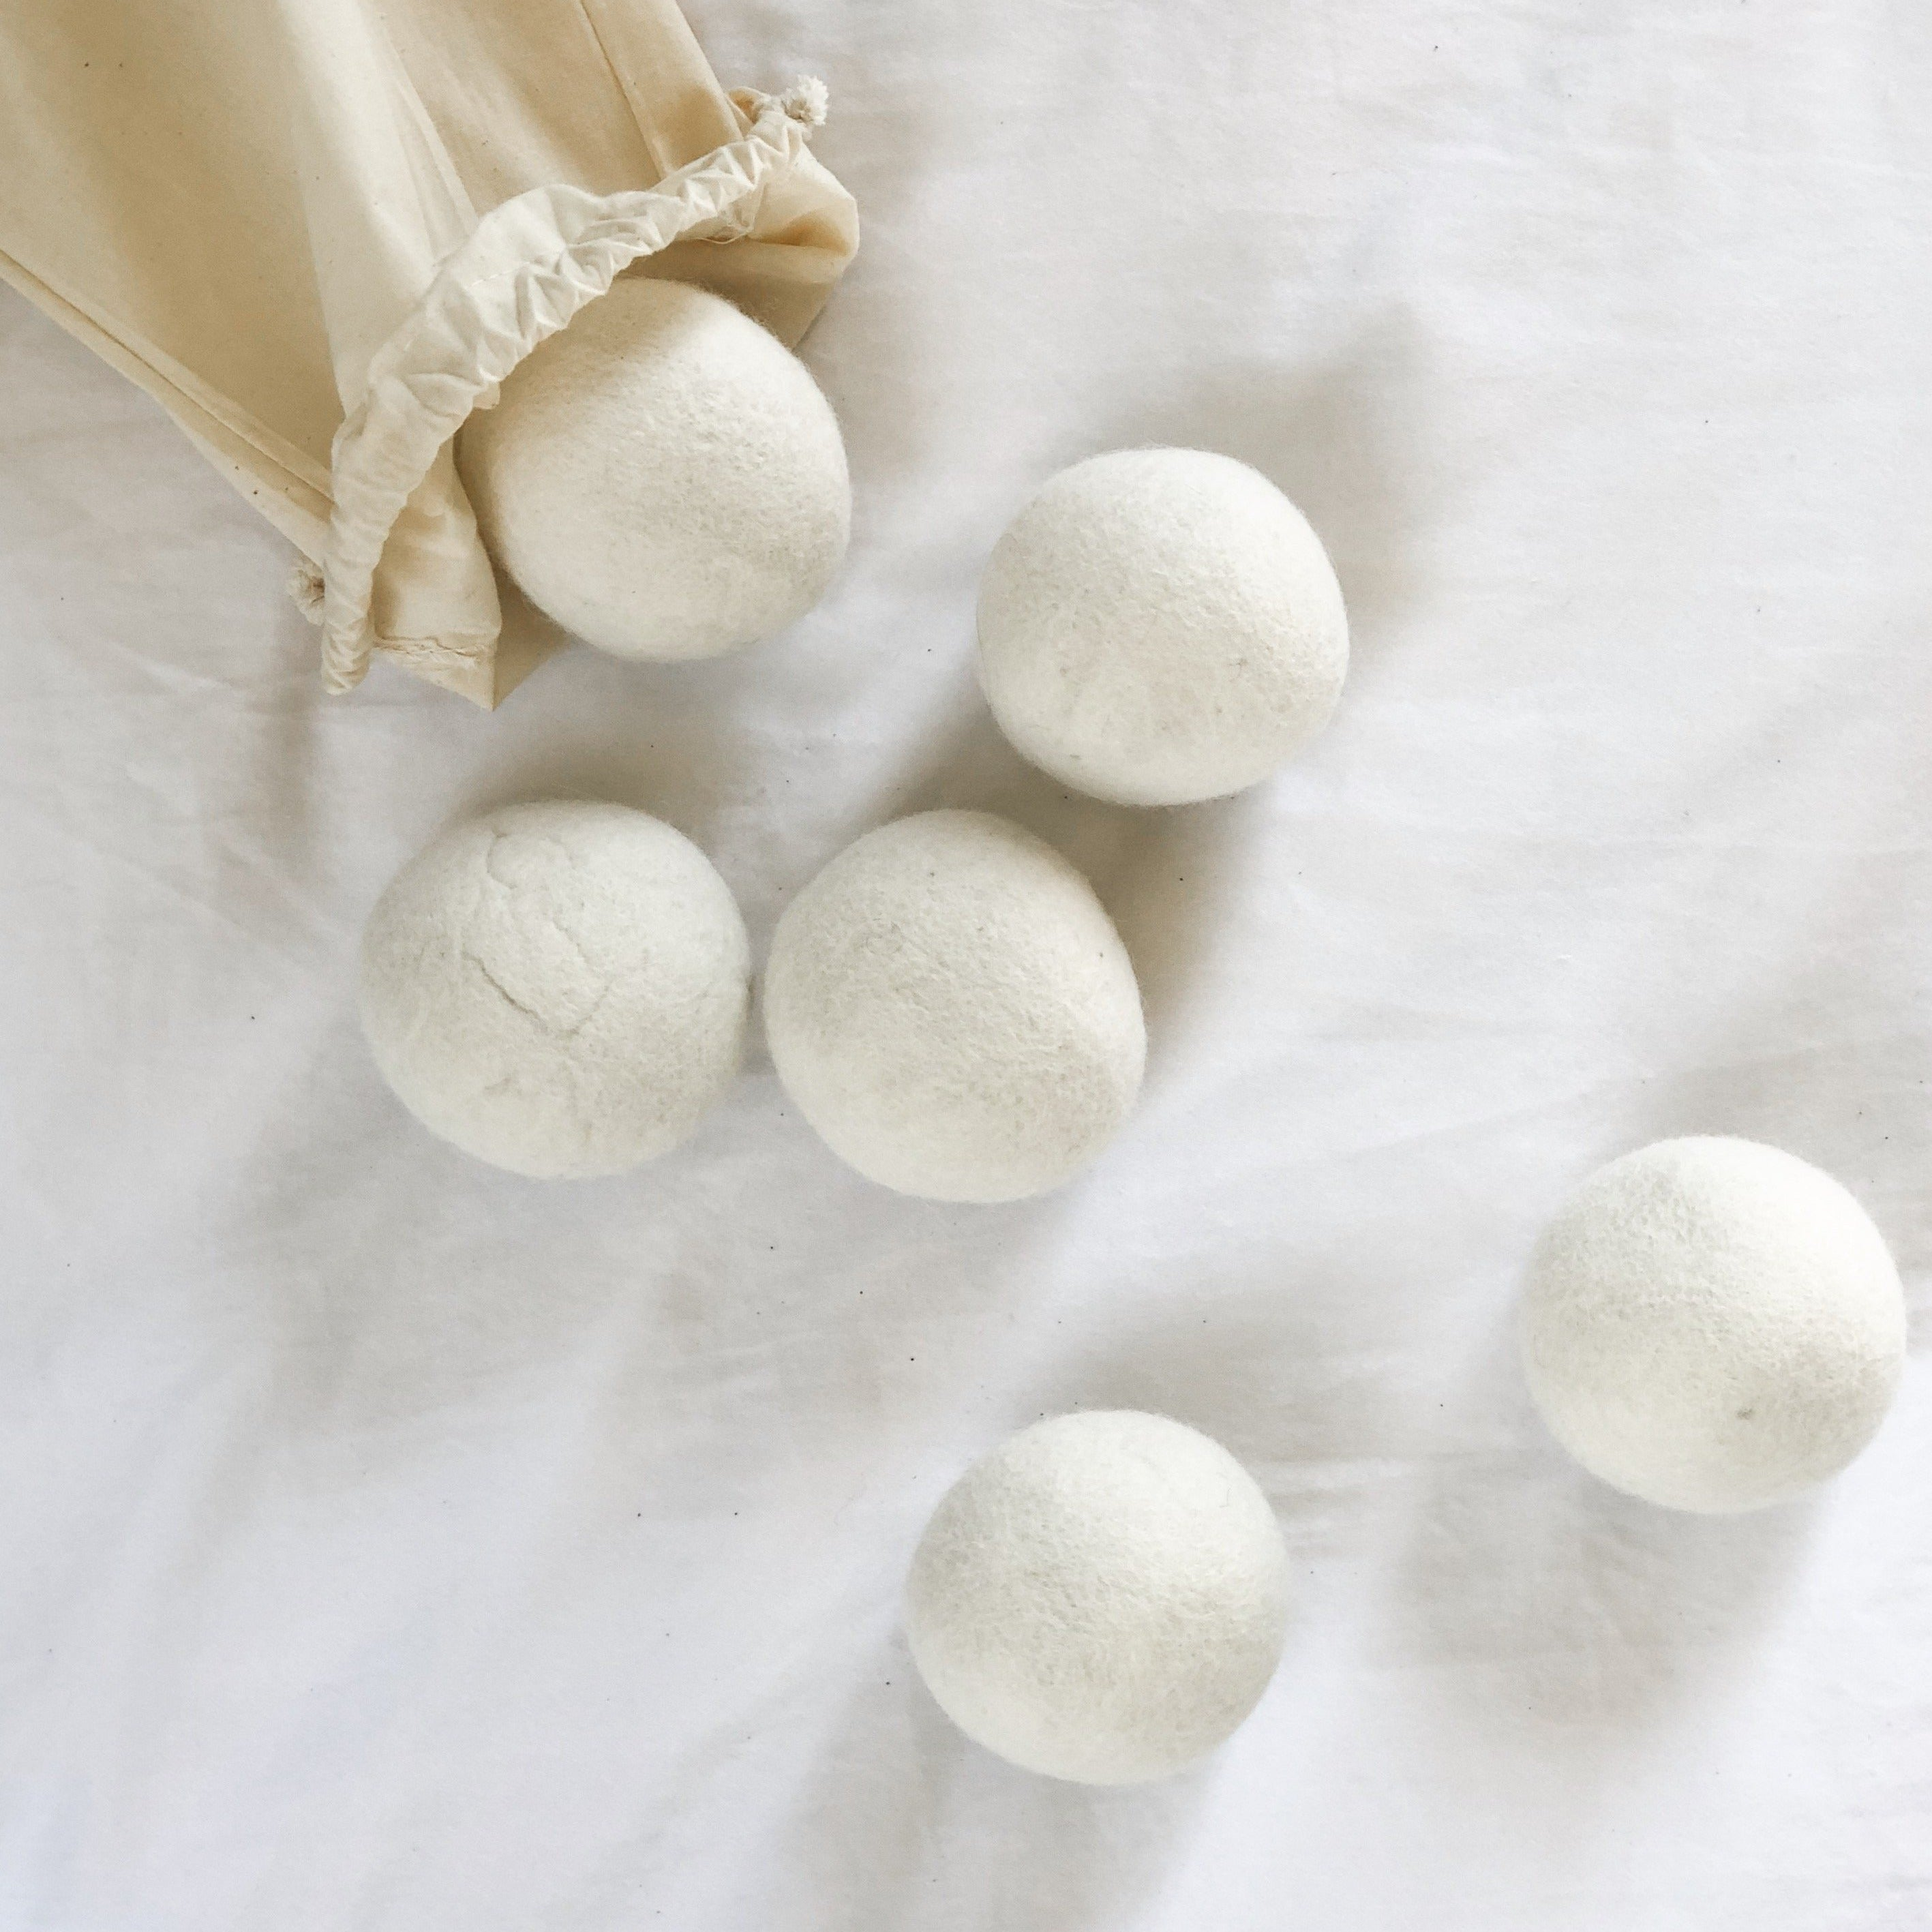 Organic Wool Rounds - Tofino Soap Company ®